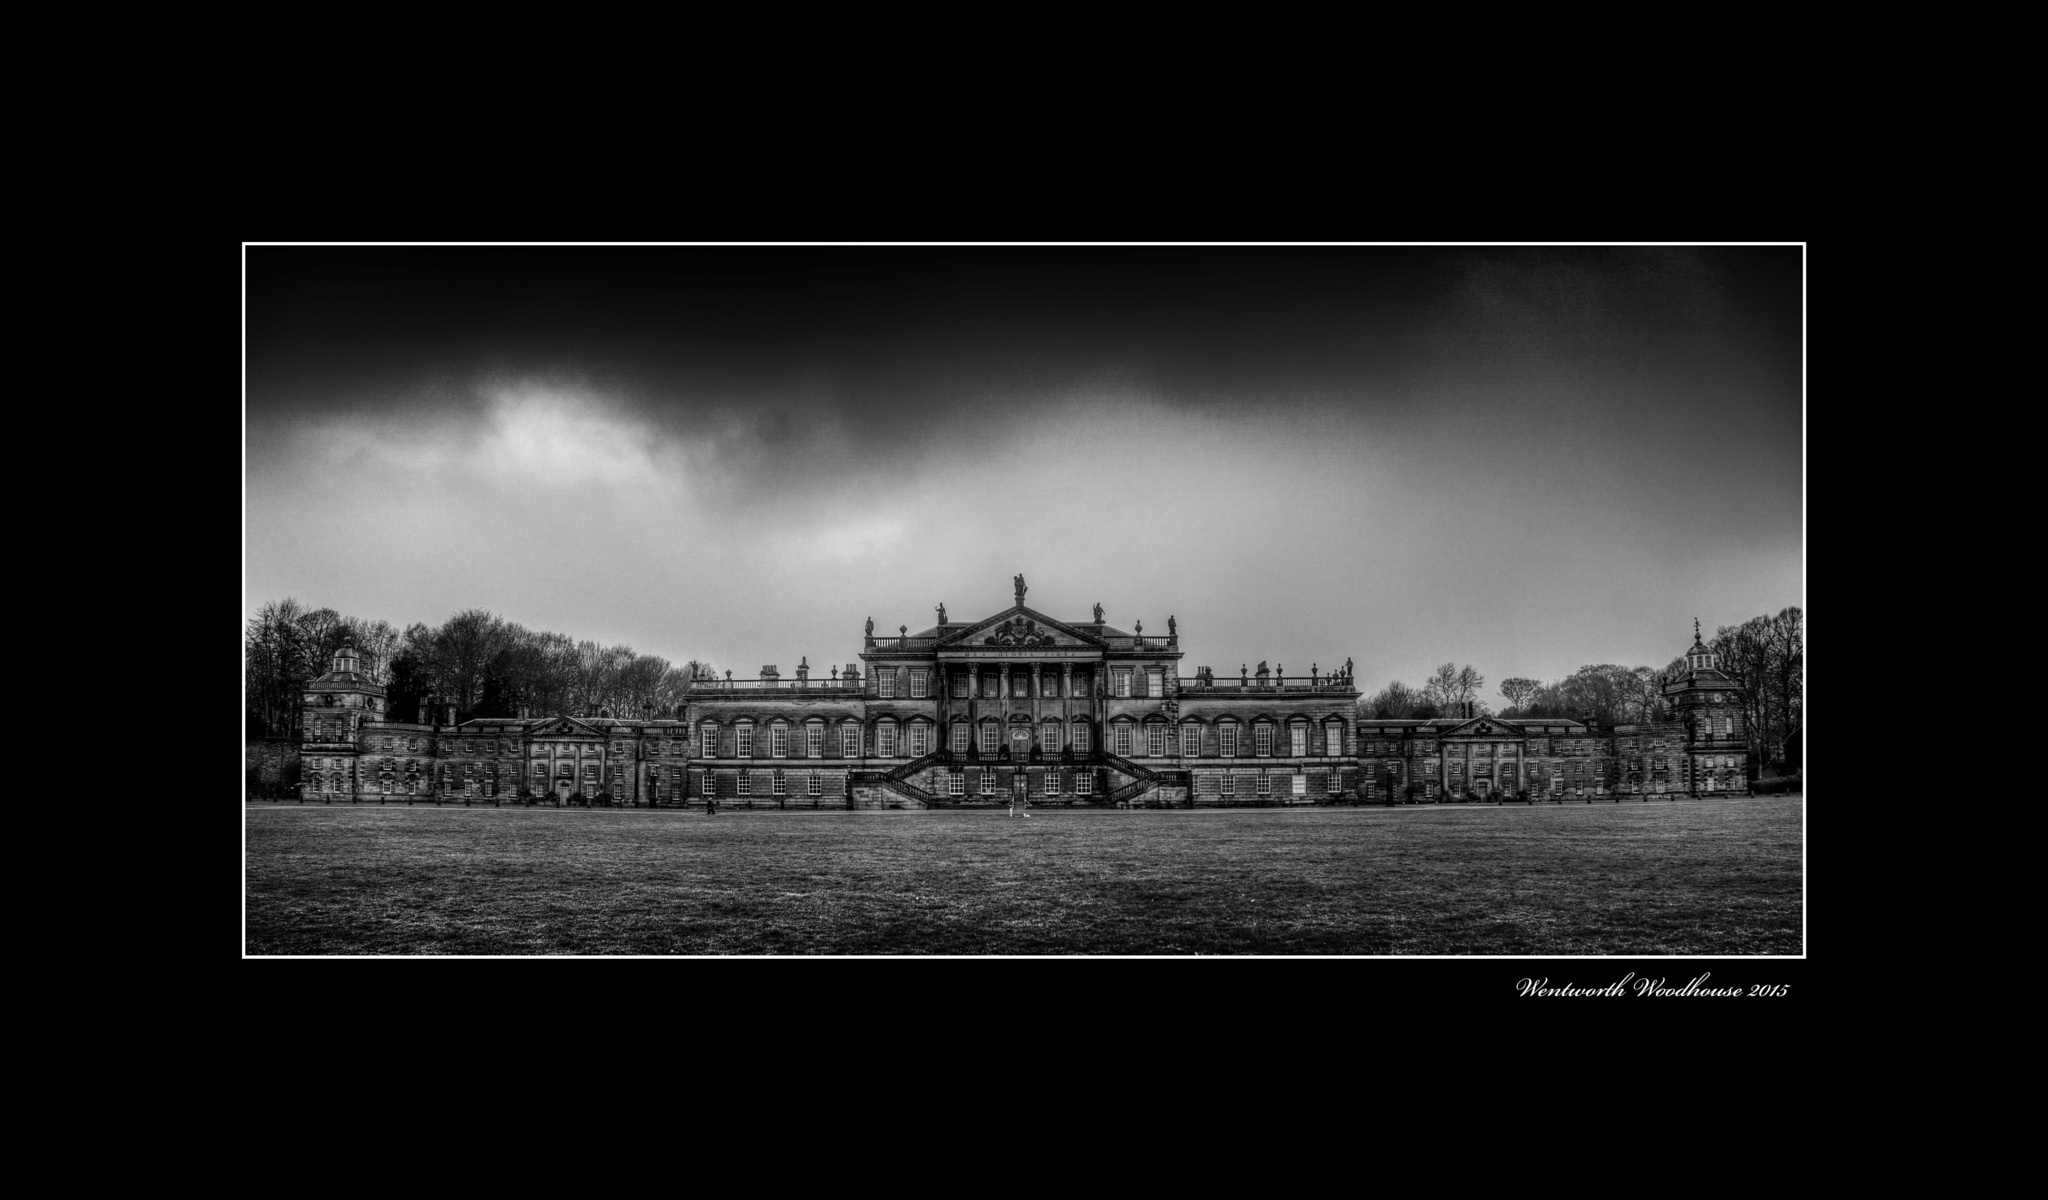 Wentworth Woodhouse by Camera_Obscura